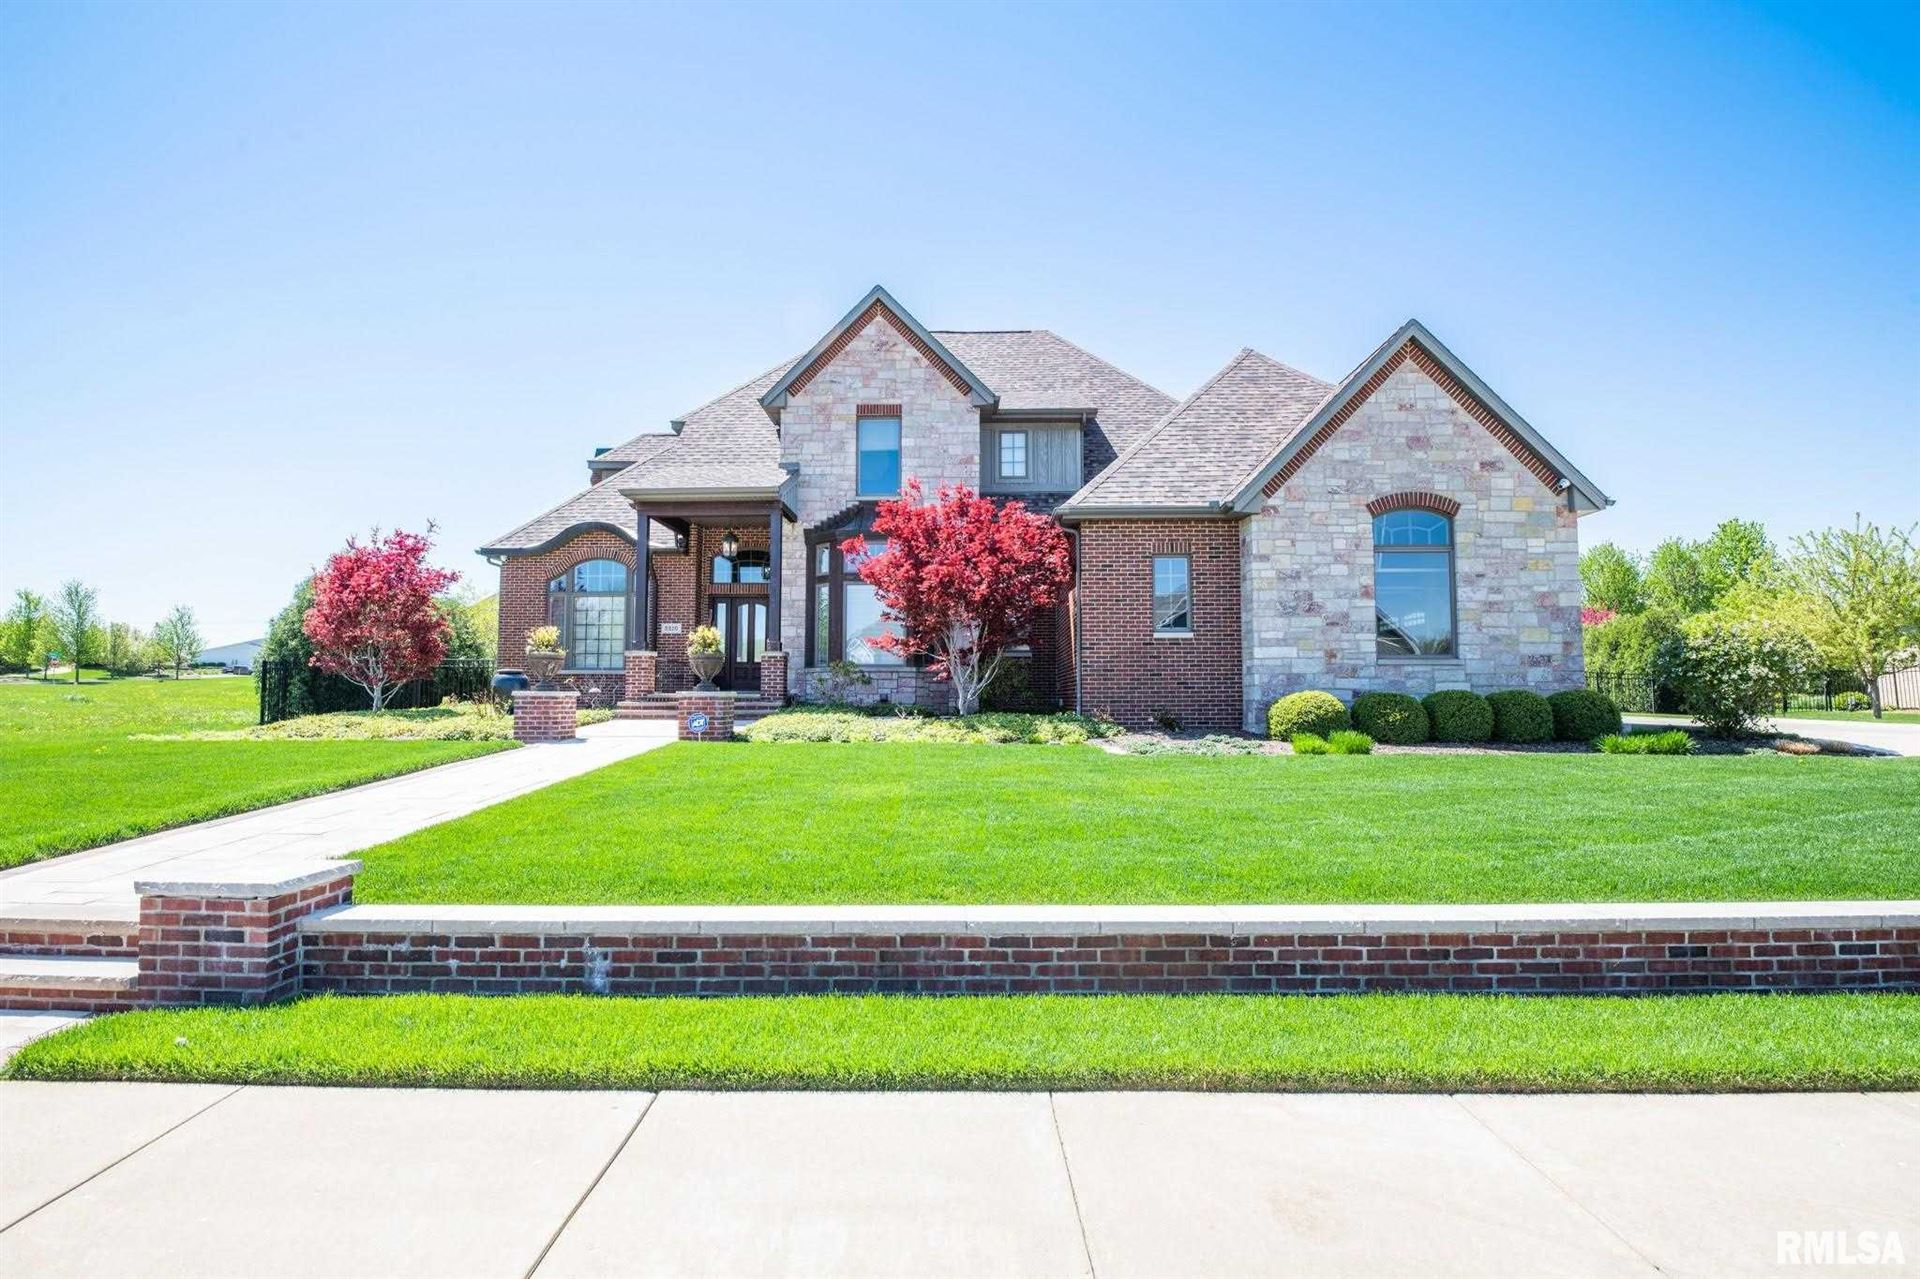 3210 W ST CHARLES Place, Peoria, IL 61615 - MLS#: PA1224539